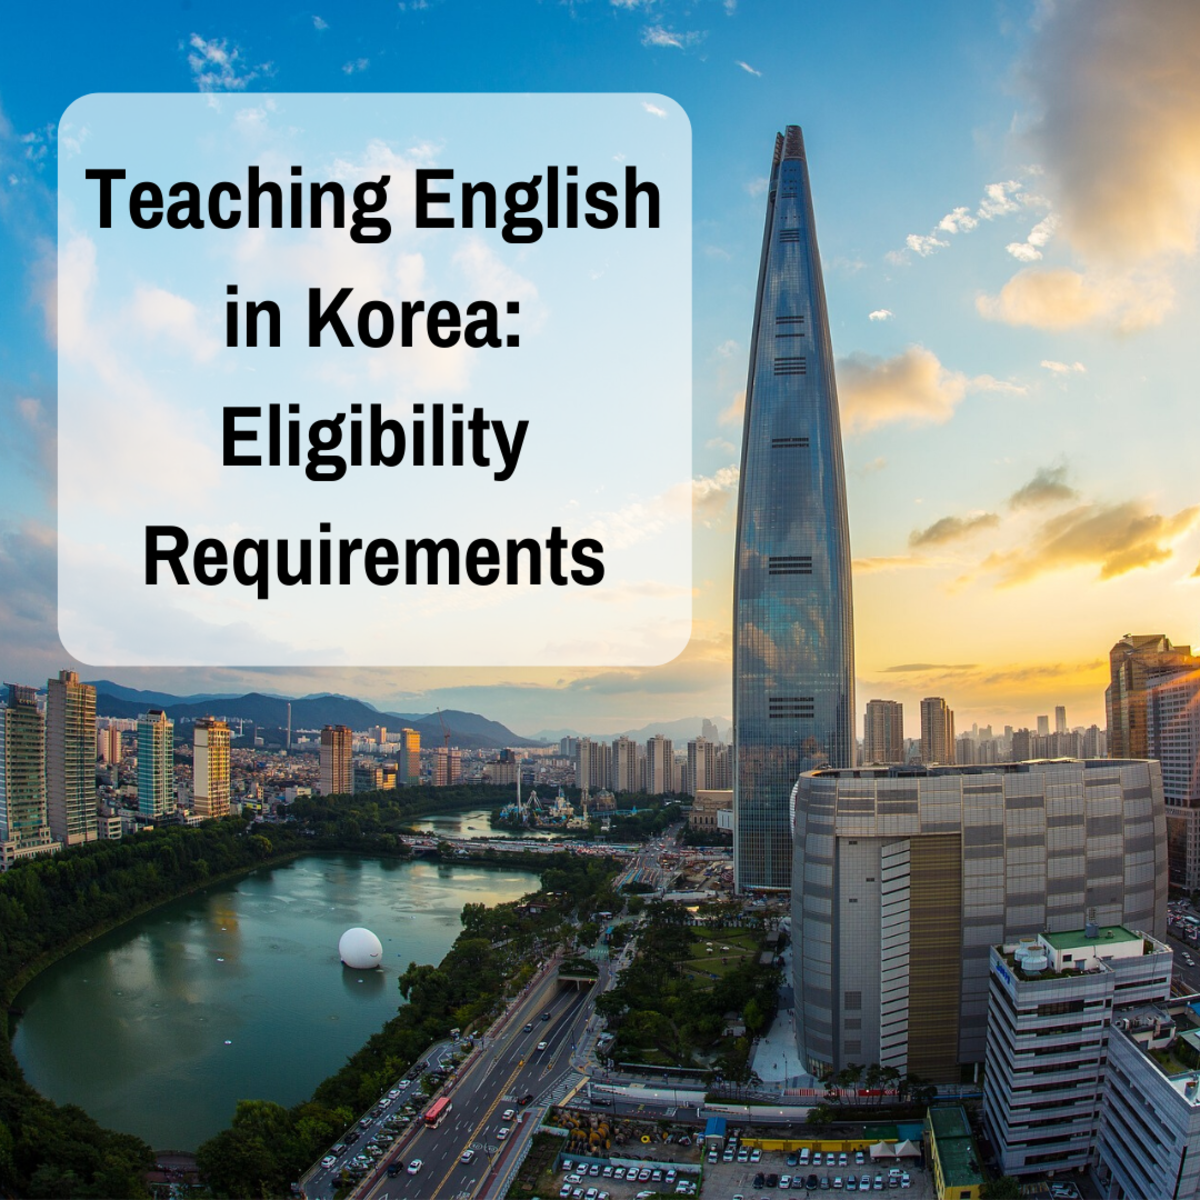 5 Requirements for Teaching English in South Korea